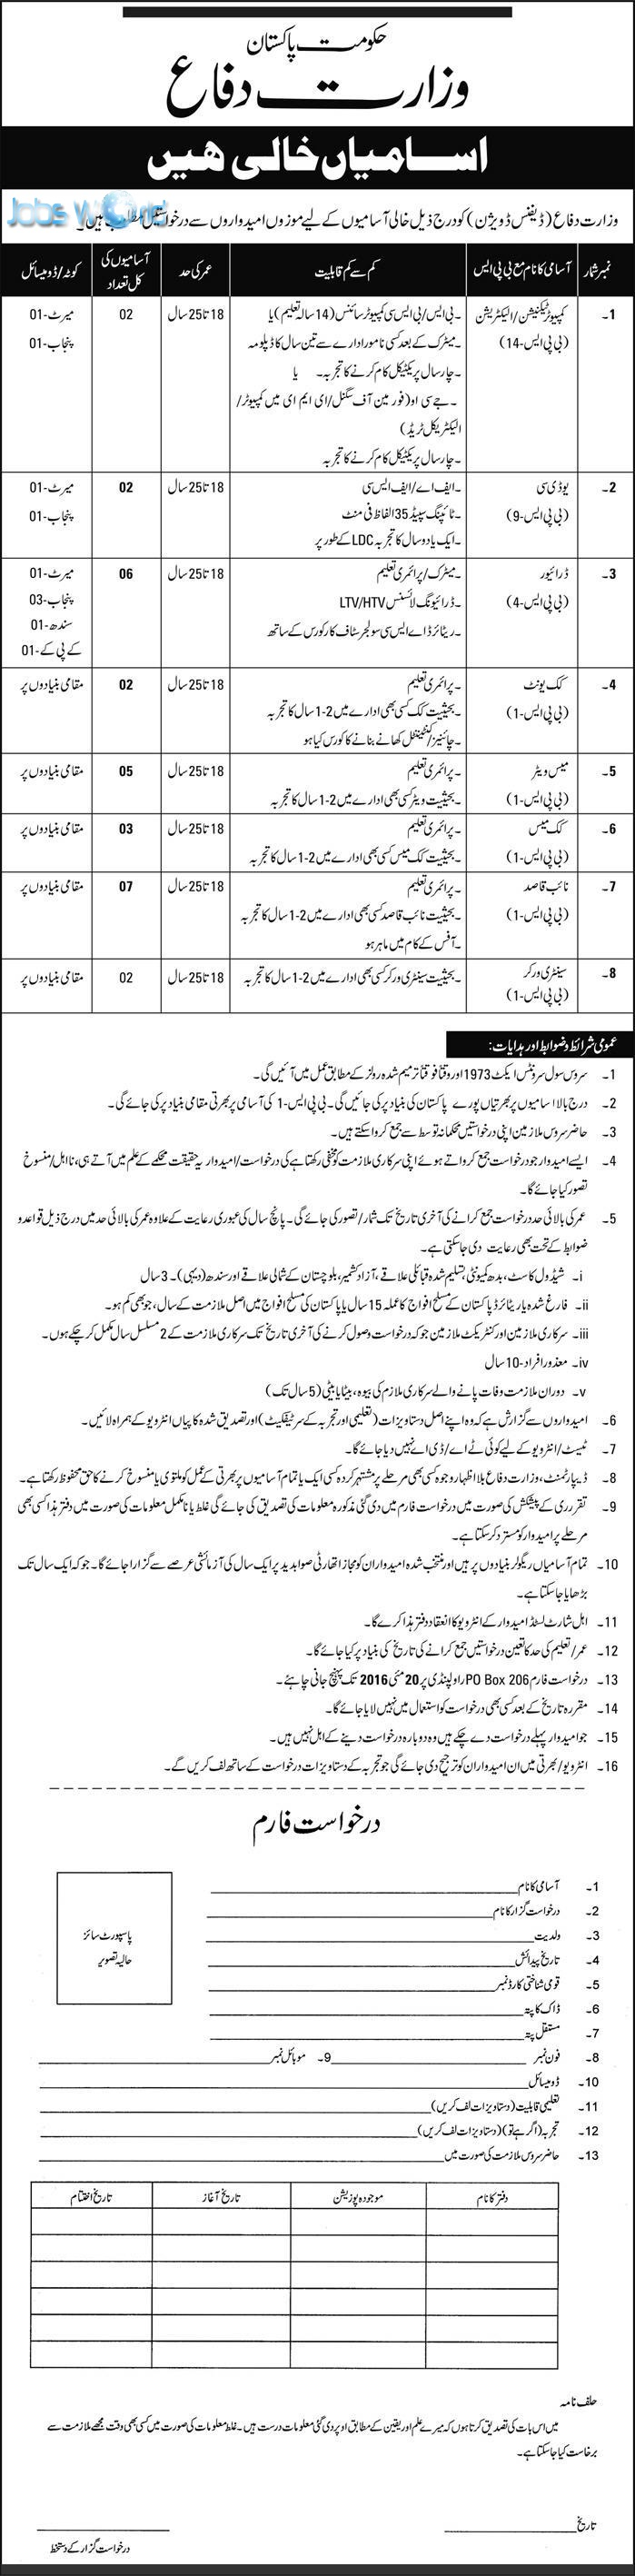 jobs in ministry of defence islamabad application form jobsworld jobs in ministry of defence islamabad 2016 application form